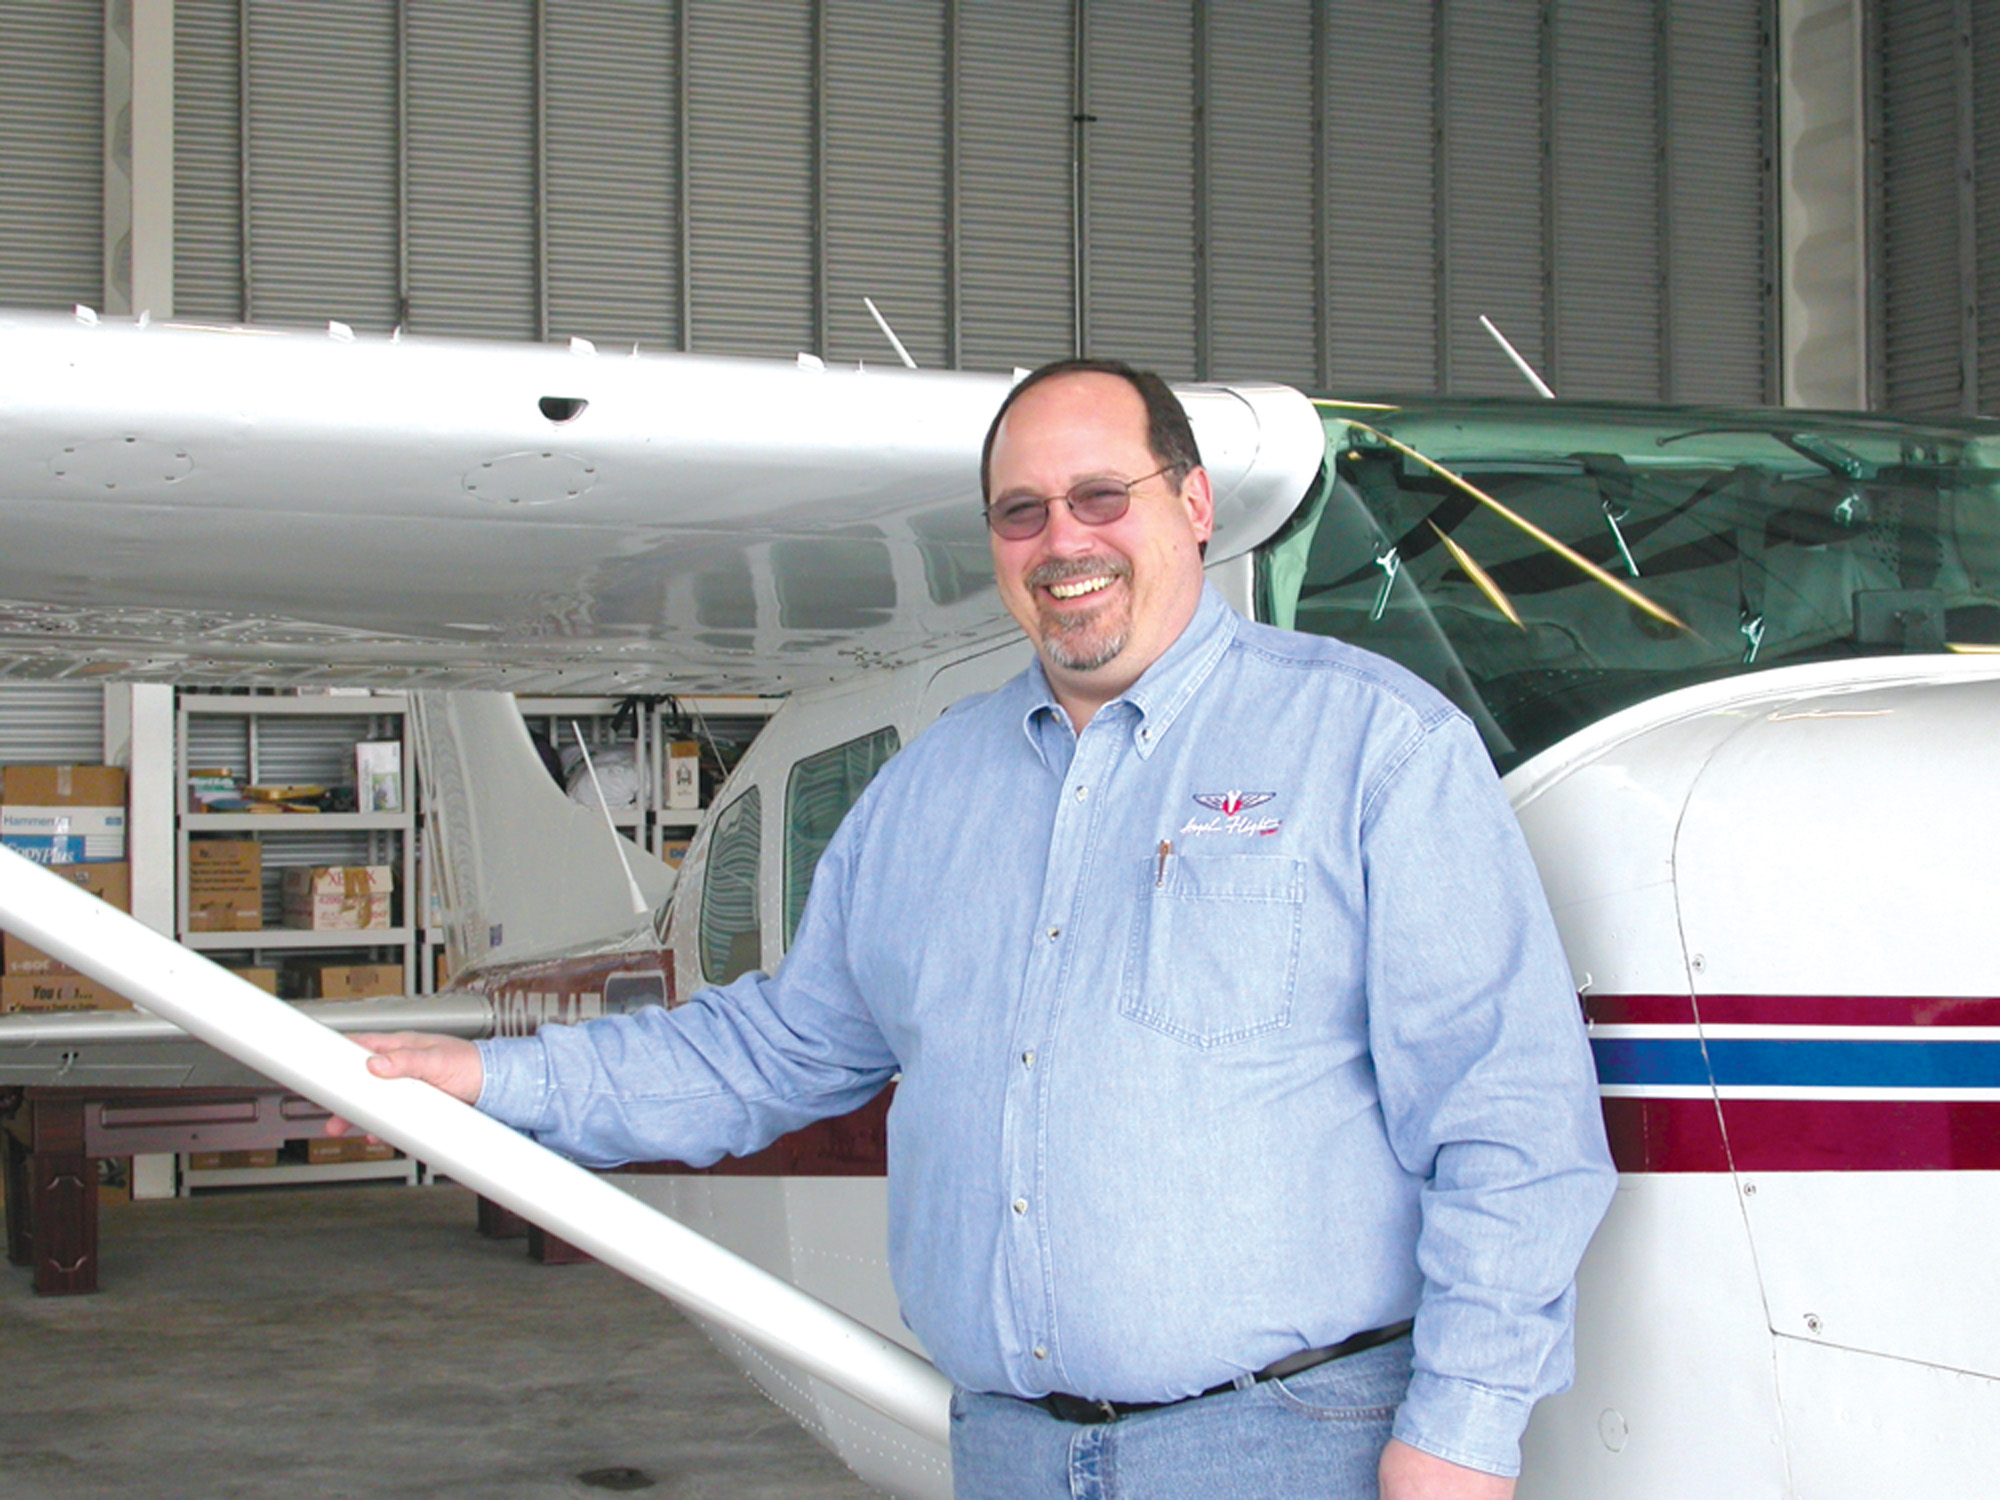 Dale Terwedo: Helping People with Angel Flights